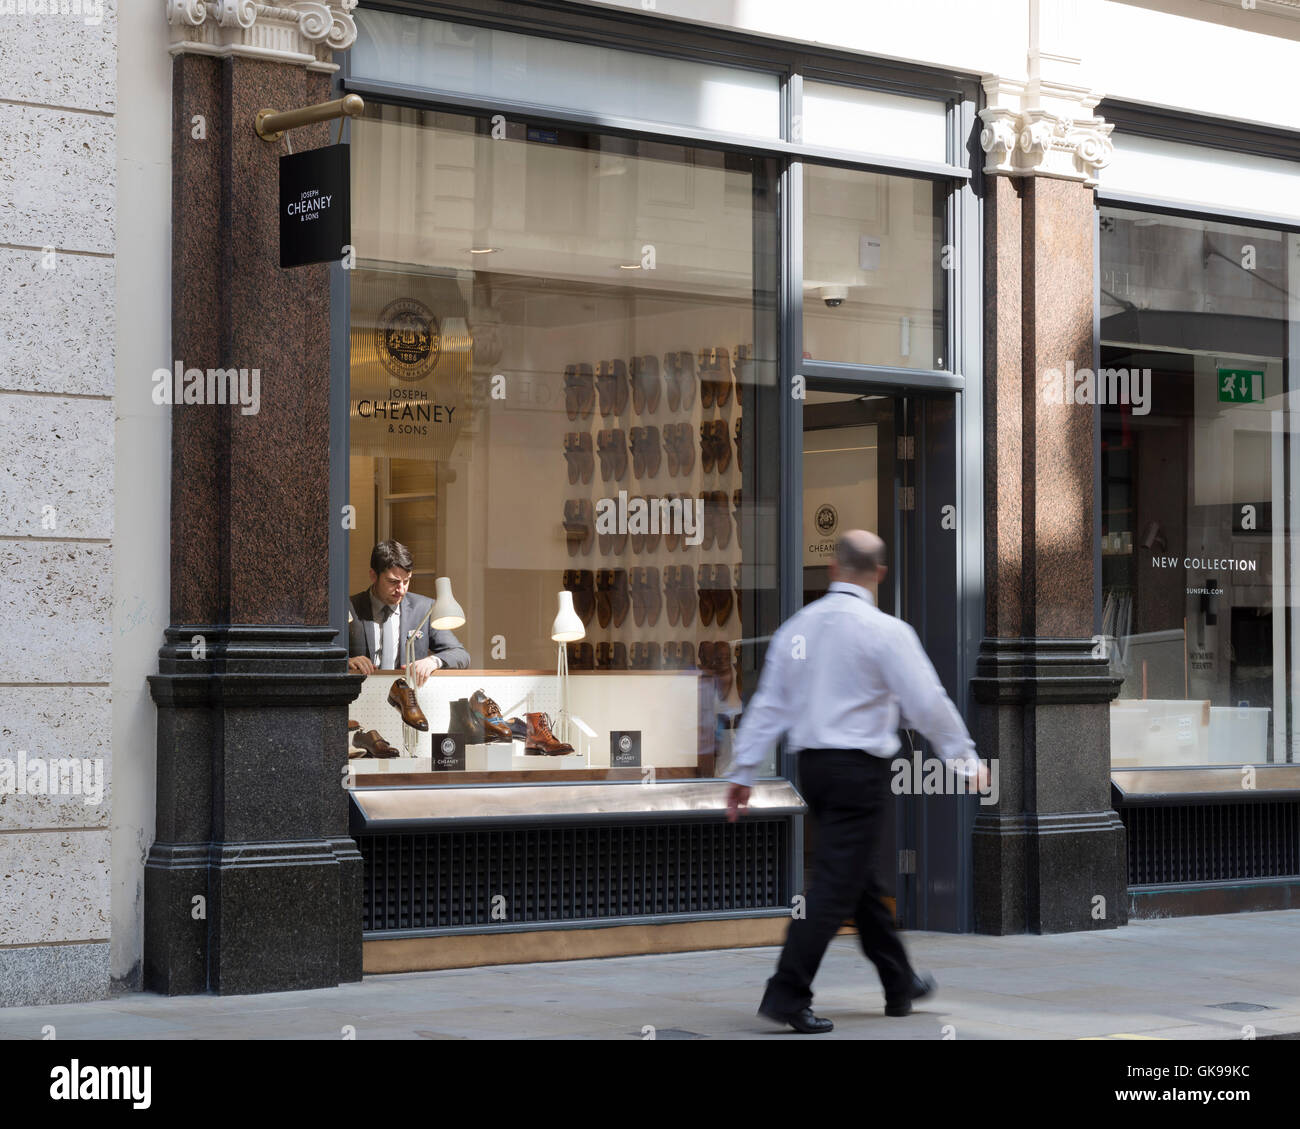 Oblique view of store front. Joseph Cheaney, London, United Kingdom. Architect: Checkland Kindleysides, 2014. - Stock Image